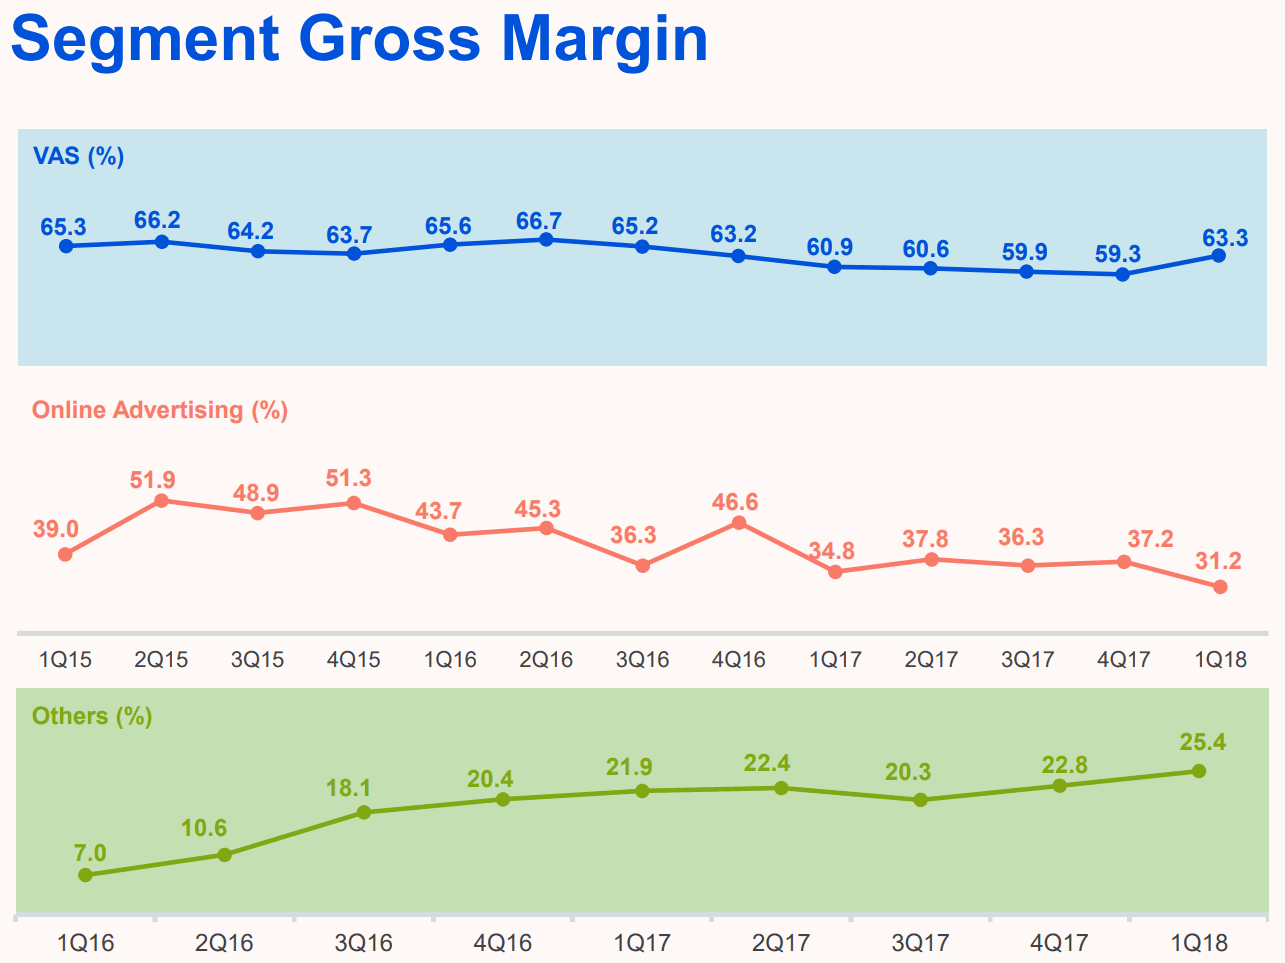 Tencent-2018Q1-Segment-Gross-Margin